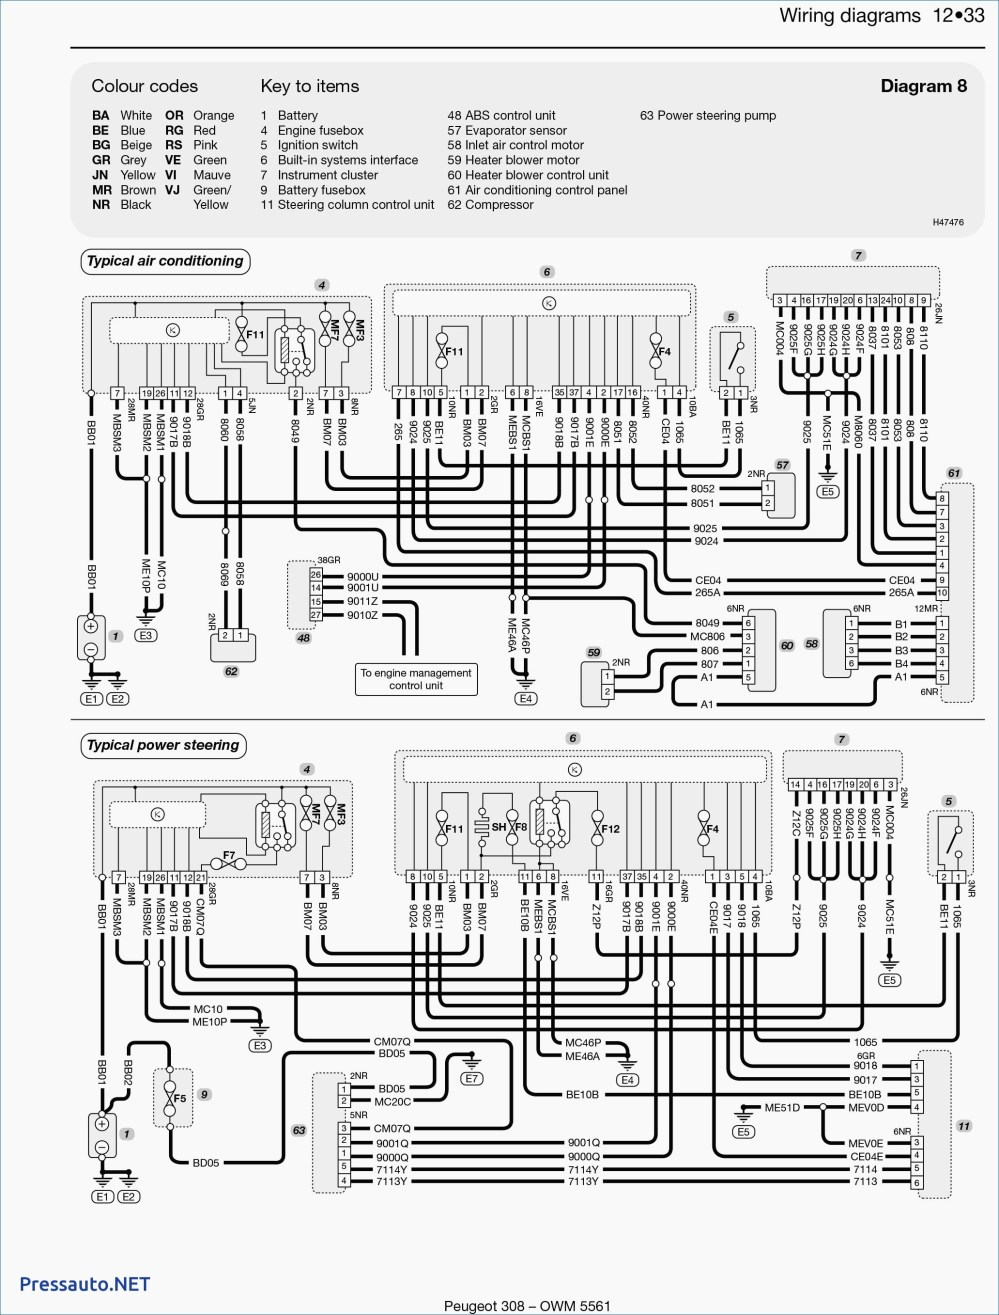 medium resolution of peugeot audio wiring diagram wiring diagram paper stereo wiring diagram peugeot 206